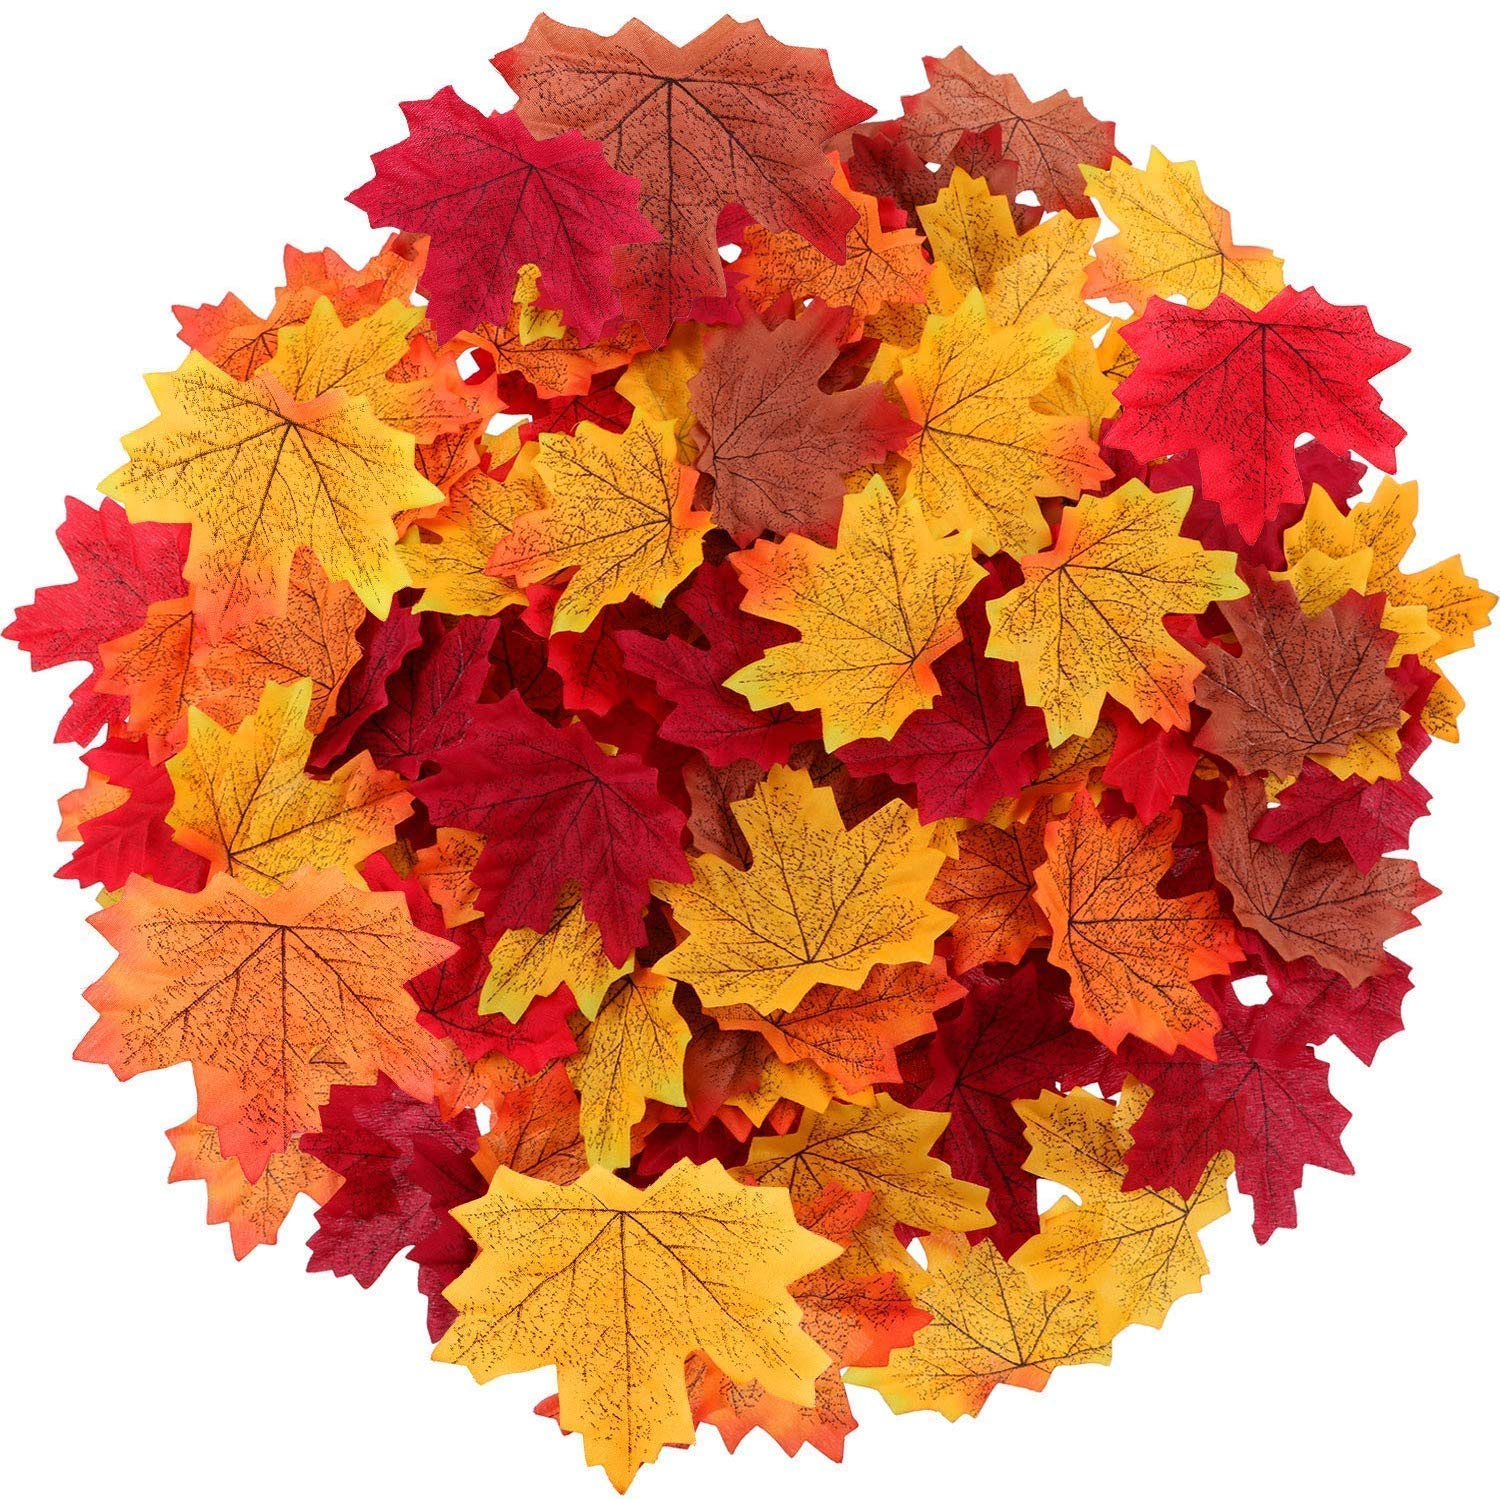 350 Pcs 7 Colors Artificial Maple Leaves Fall Leave Mixed